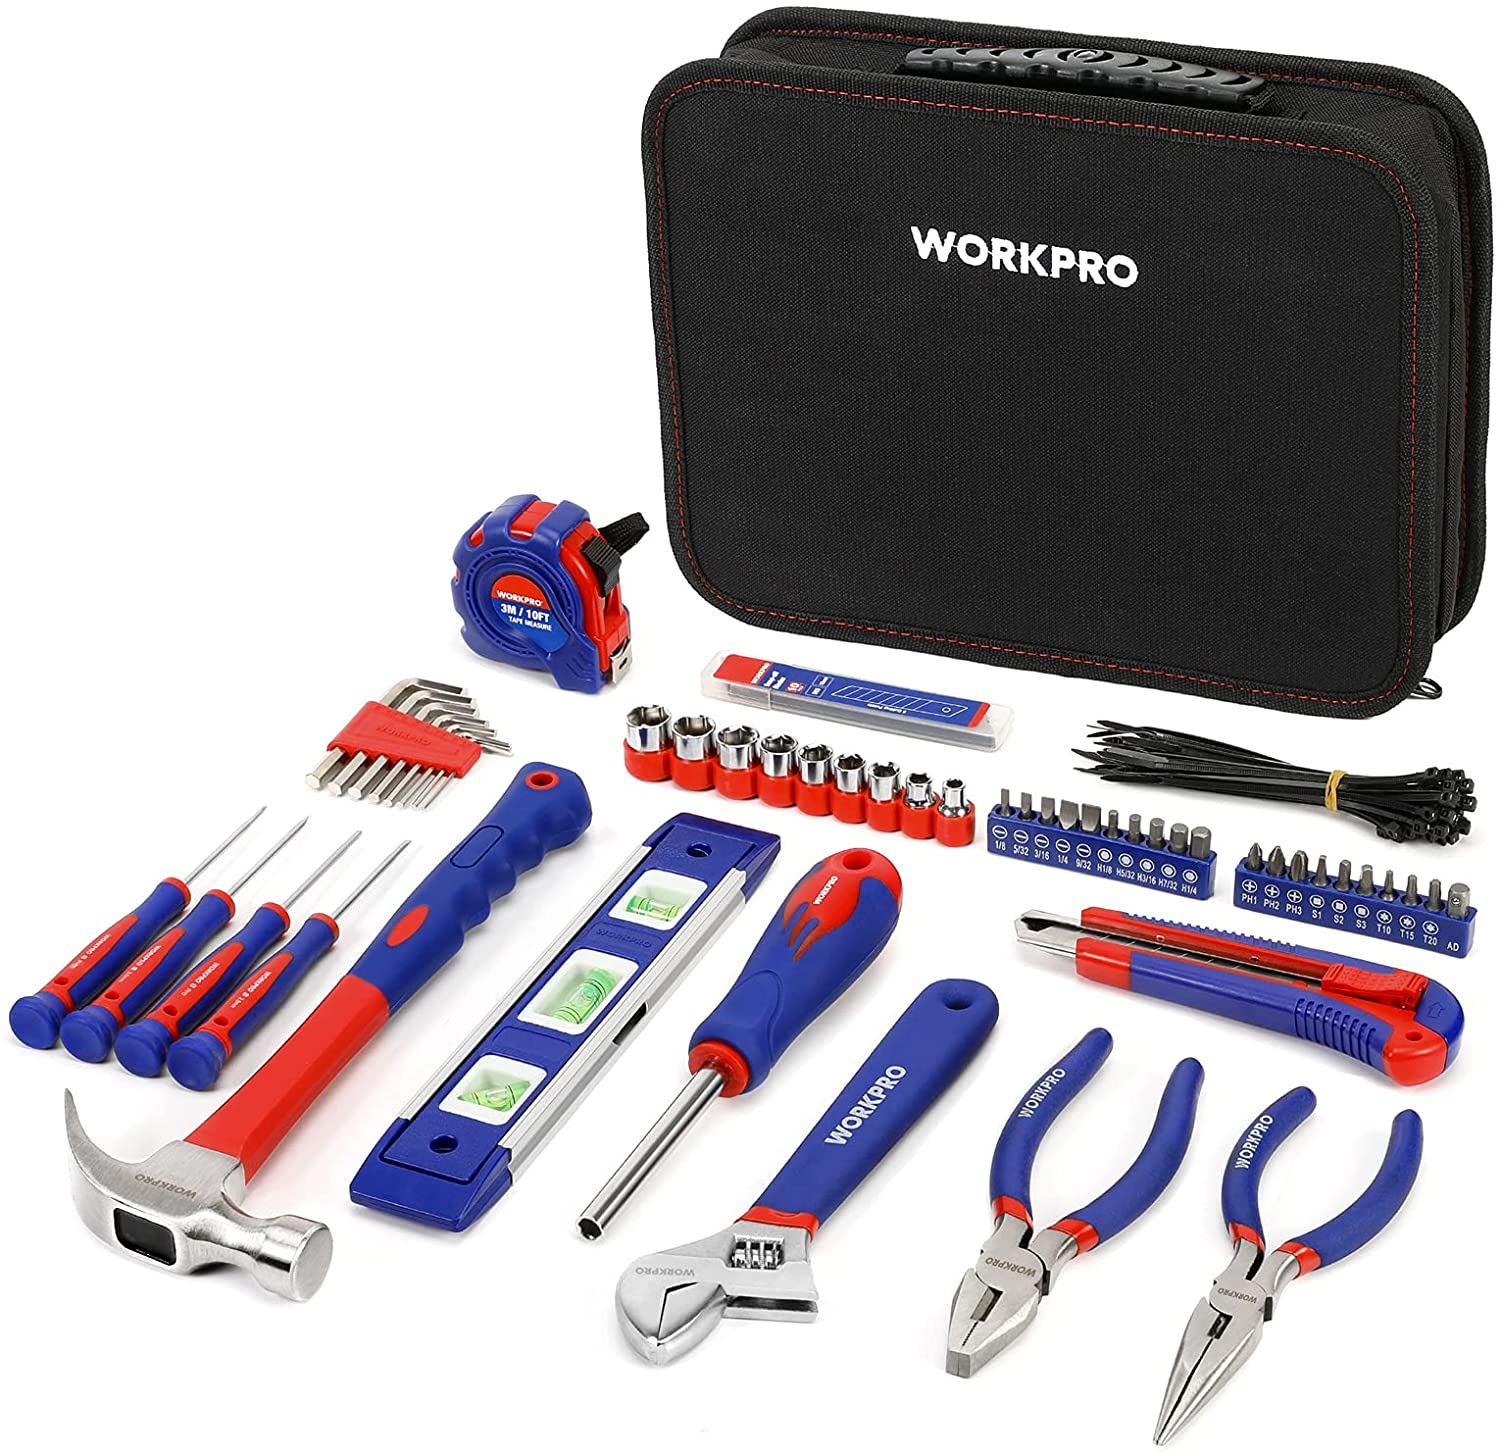 WORKPRO Home Tool Kit, 100 Piece Kitchen Drawer Household Hand Tool Set with Easy Carrying Pouch